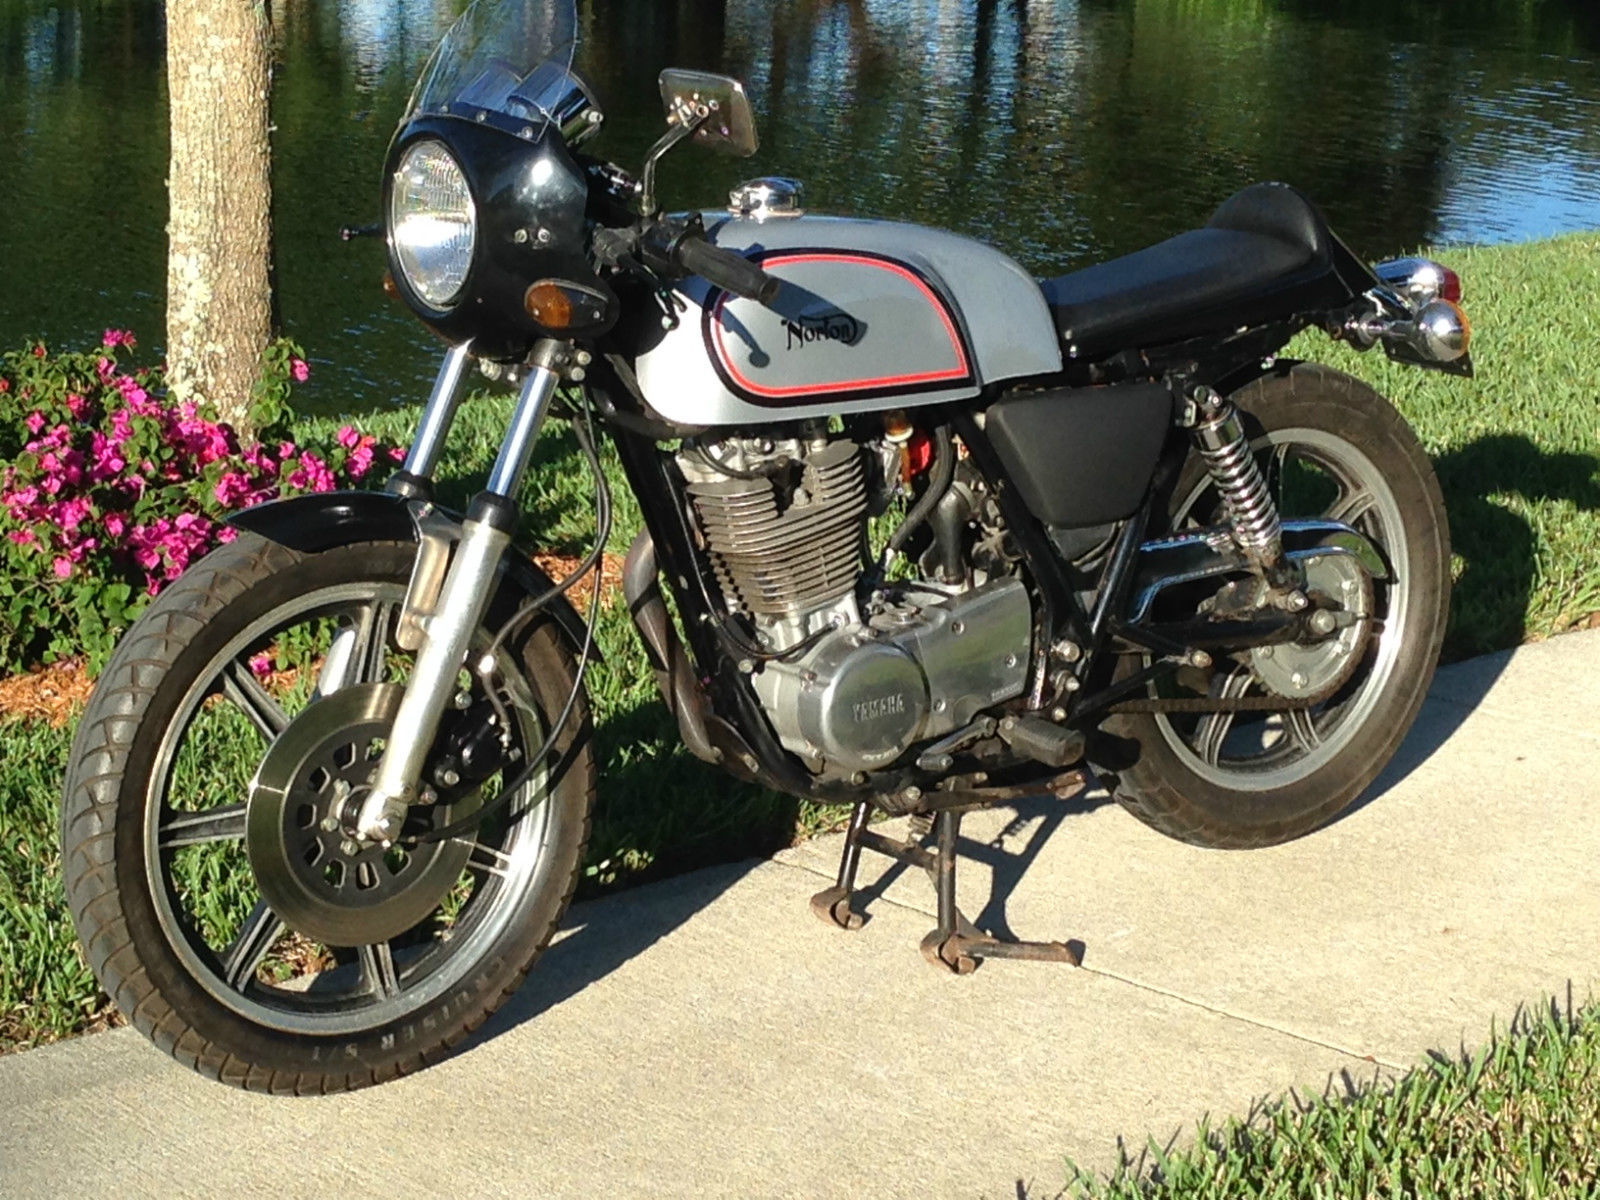 [Linked Image from yamaha-motorcycles-for-sale.com]